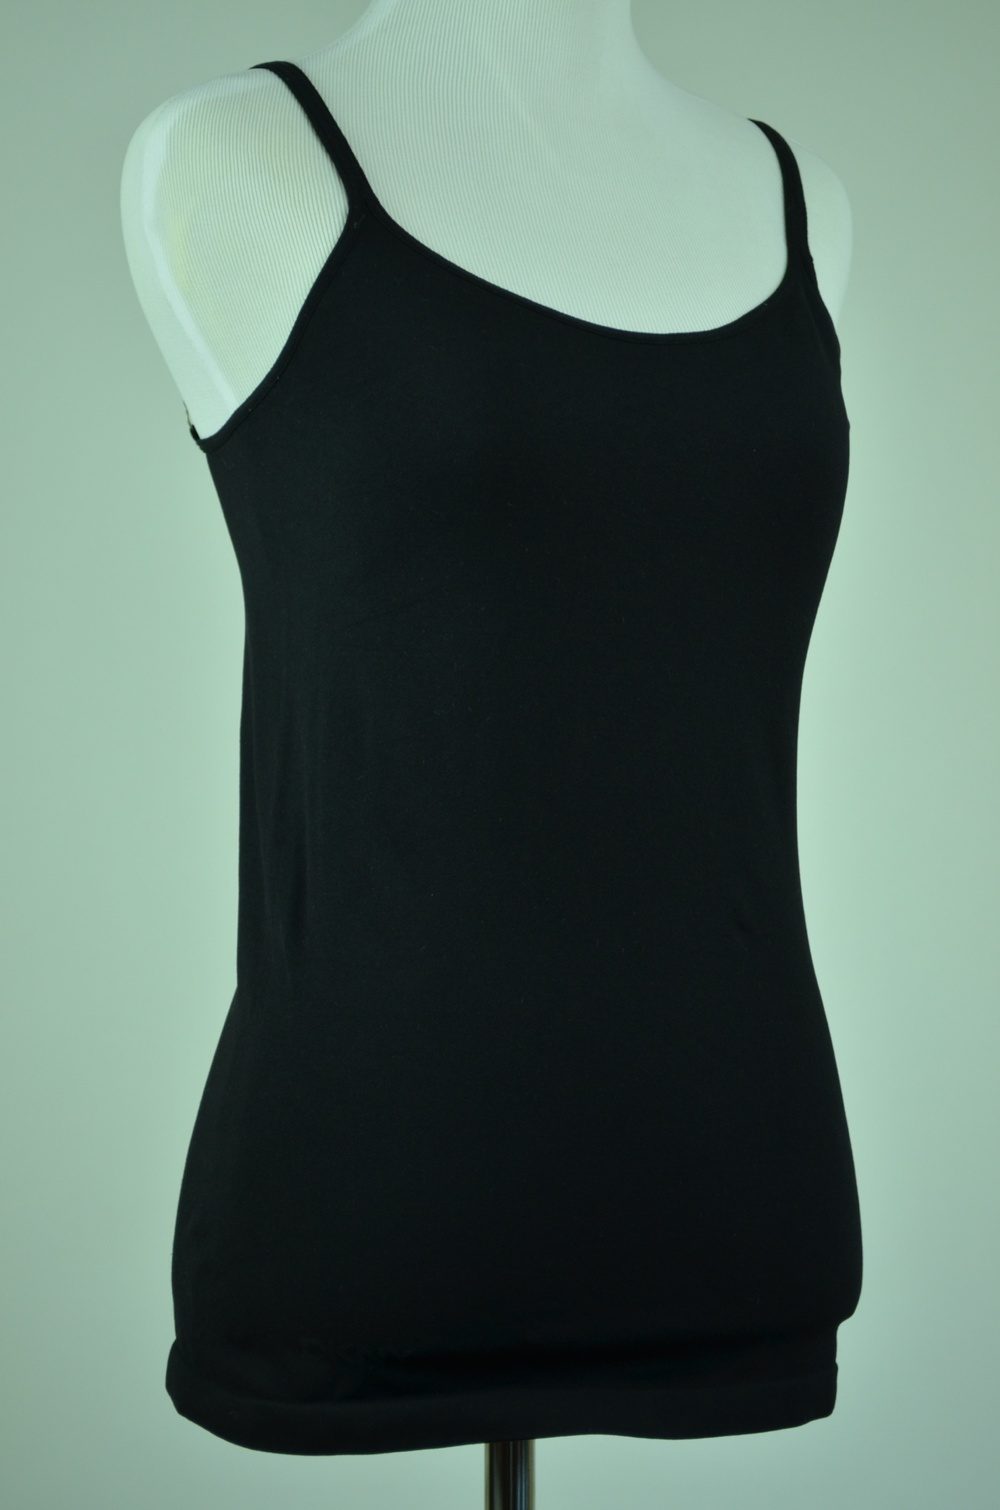 11. DKNY Stretch Cami